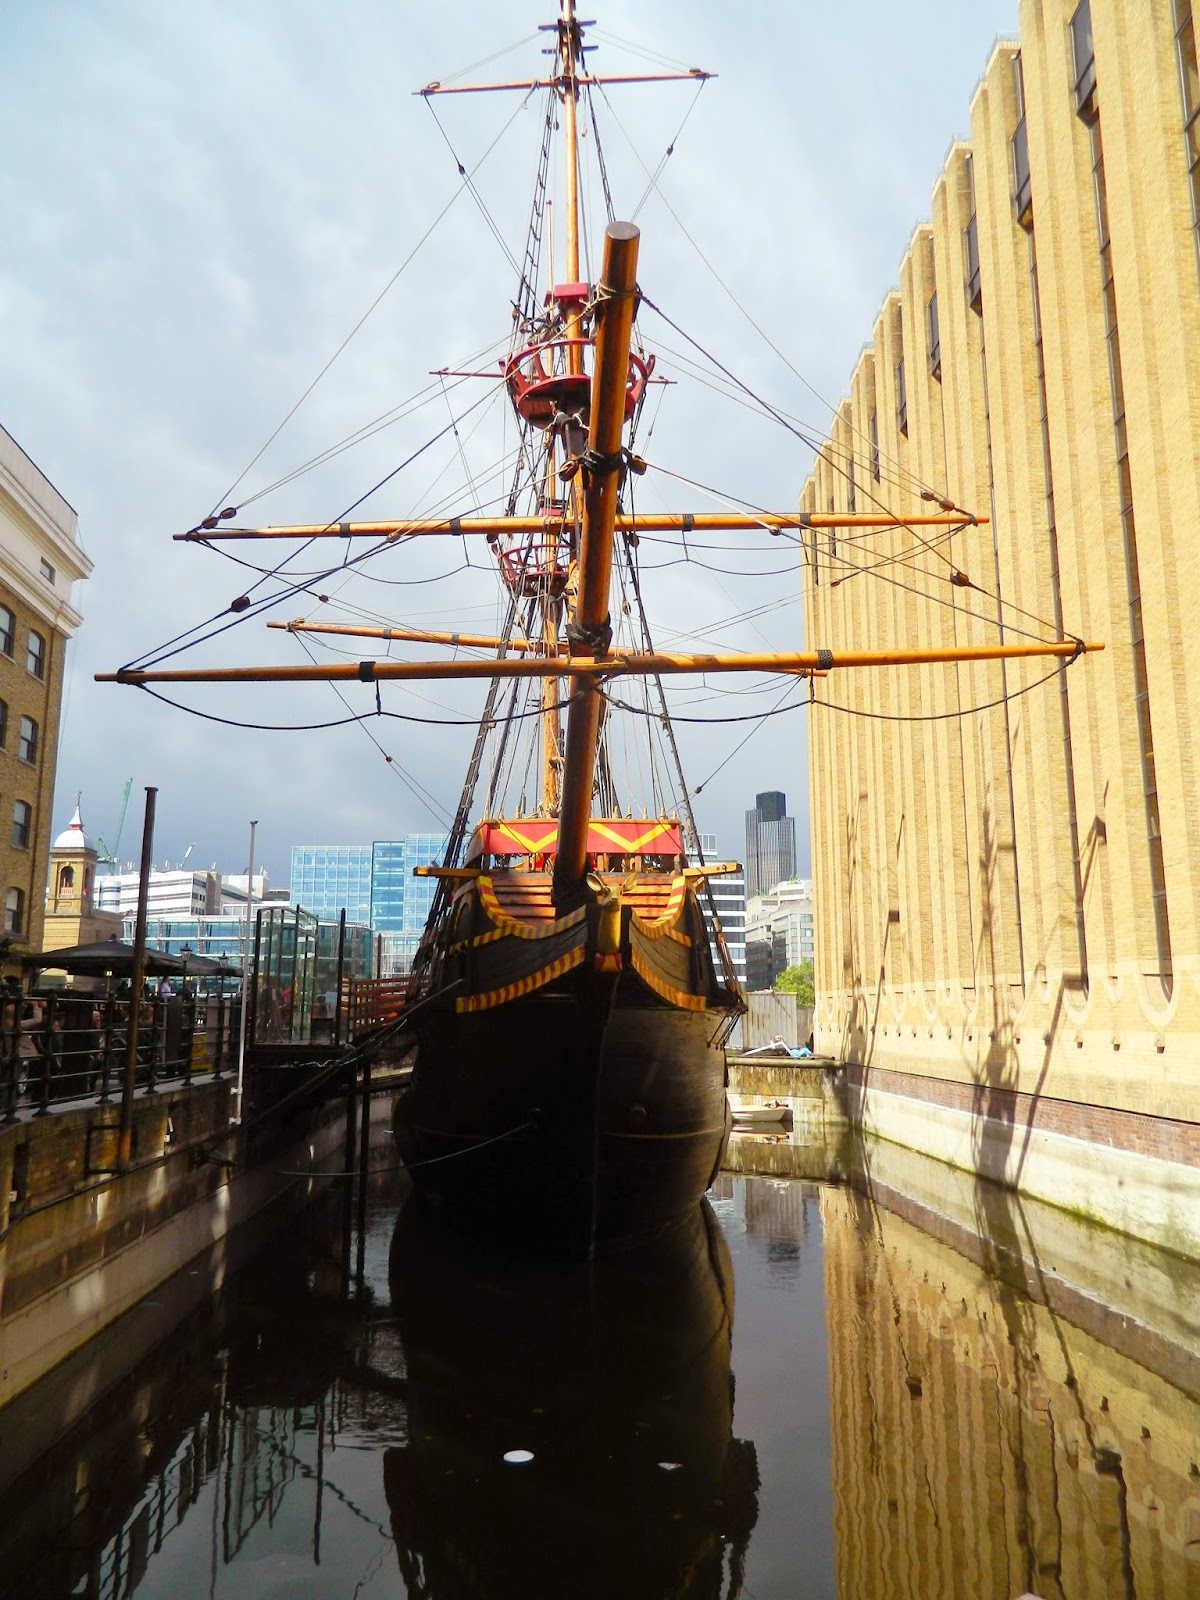 pirate ship london between buildings sails surpass